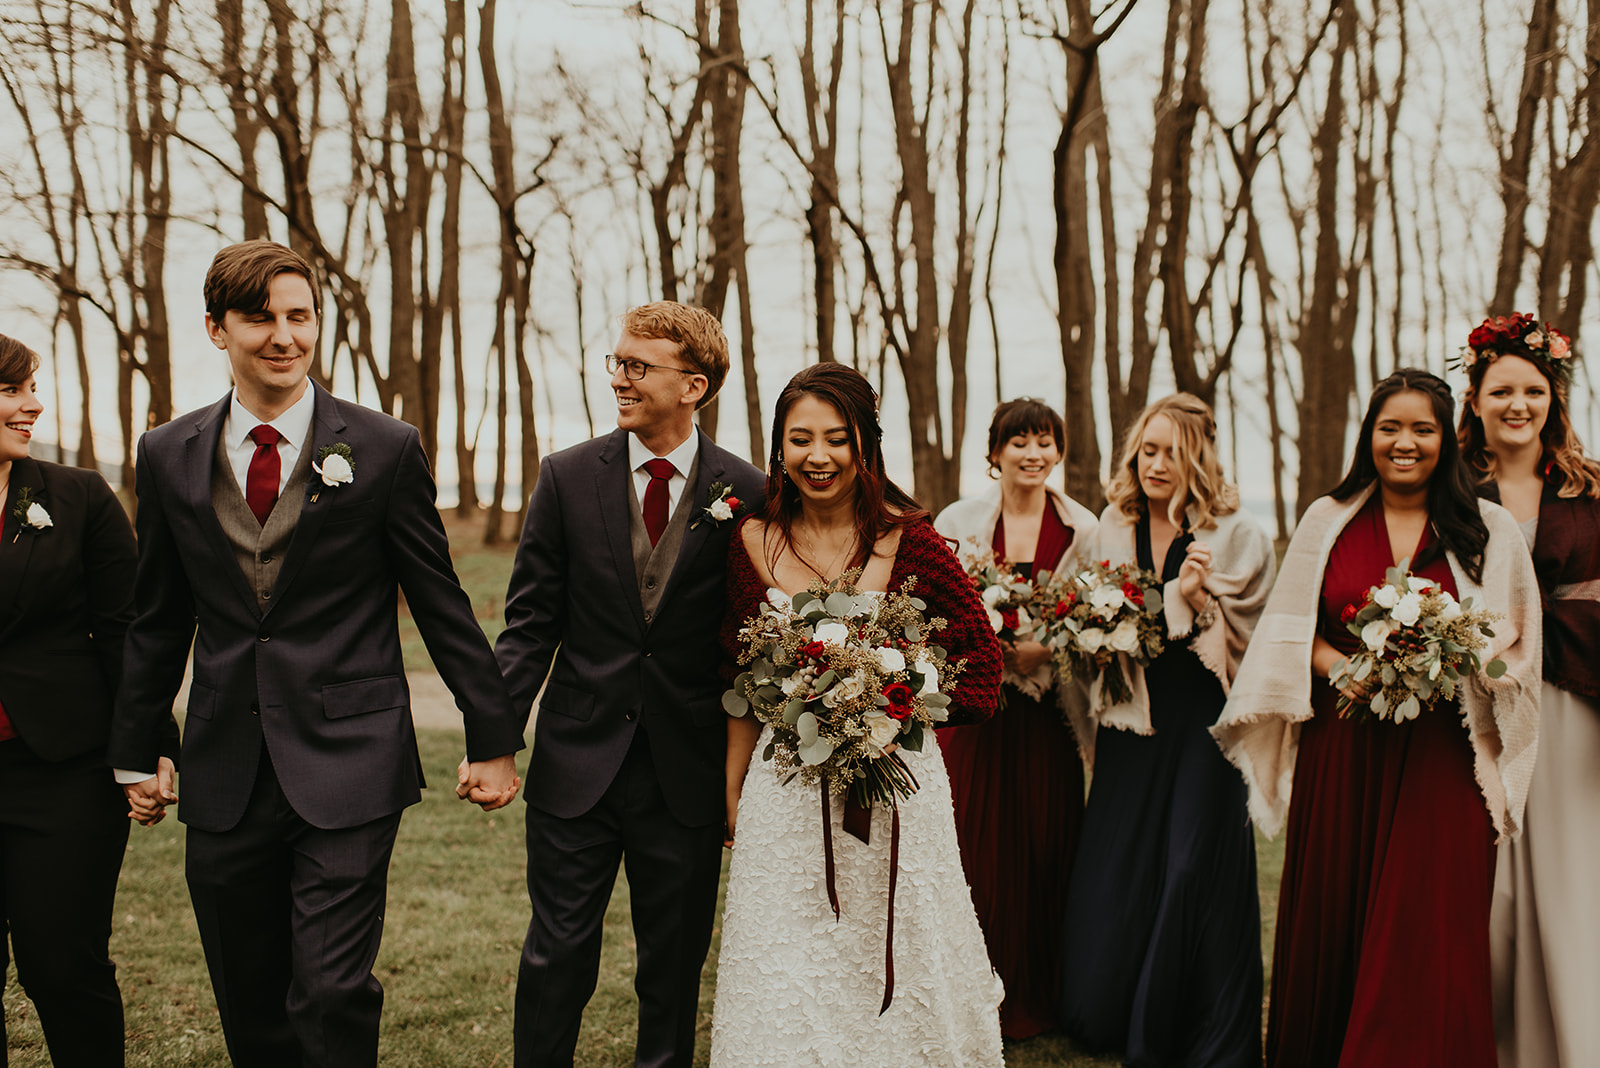 bridal party burgundy wedding.jpg